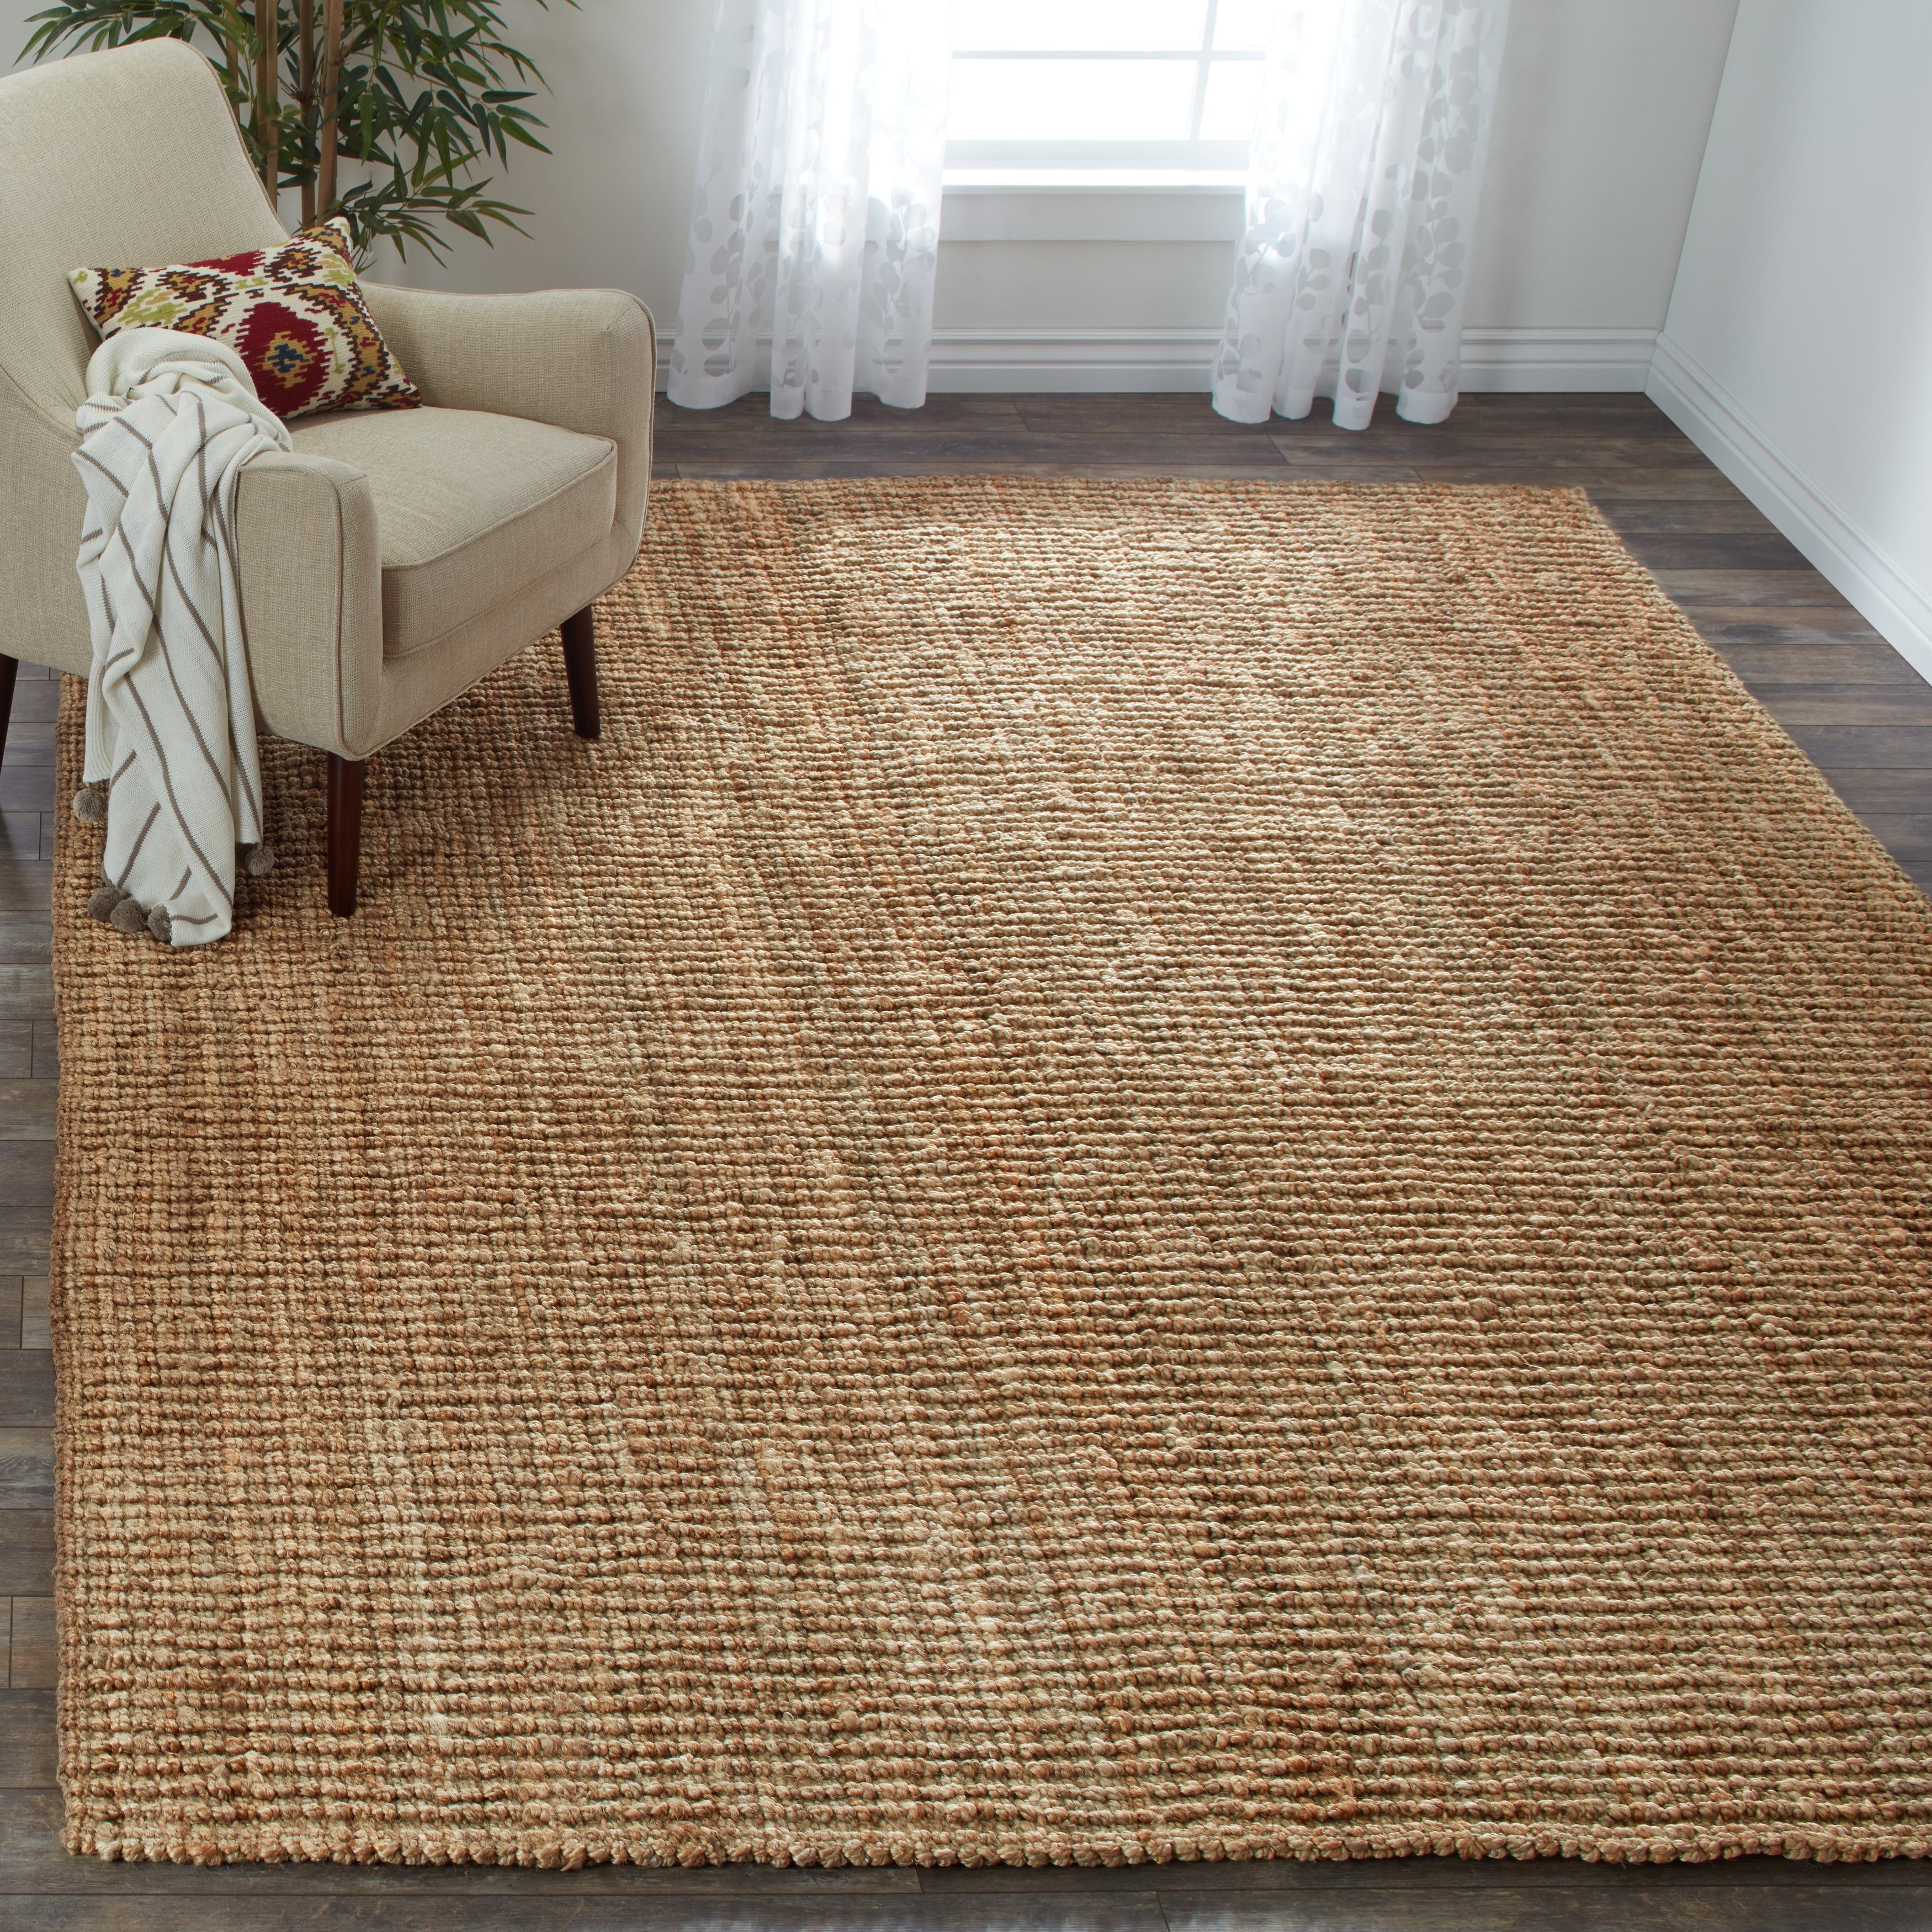 Safavieh Handwoven Casual Thick Jute Area Rug - 6' x 9'